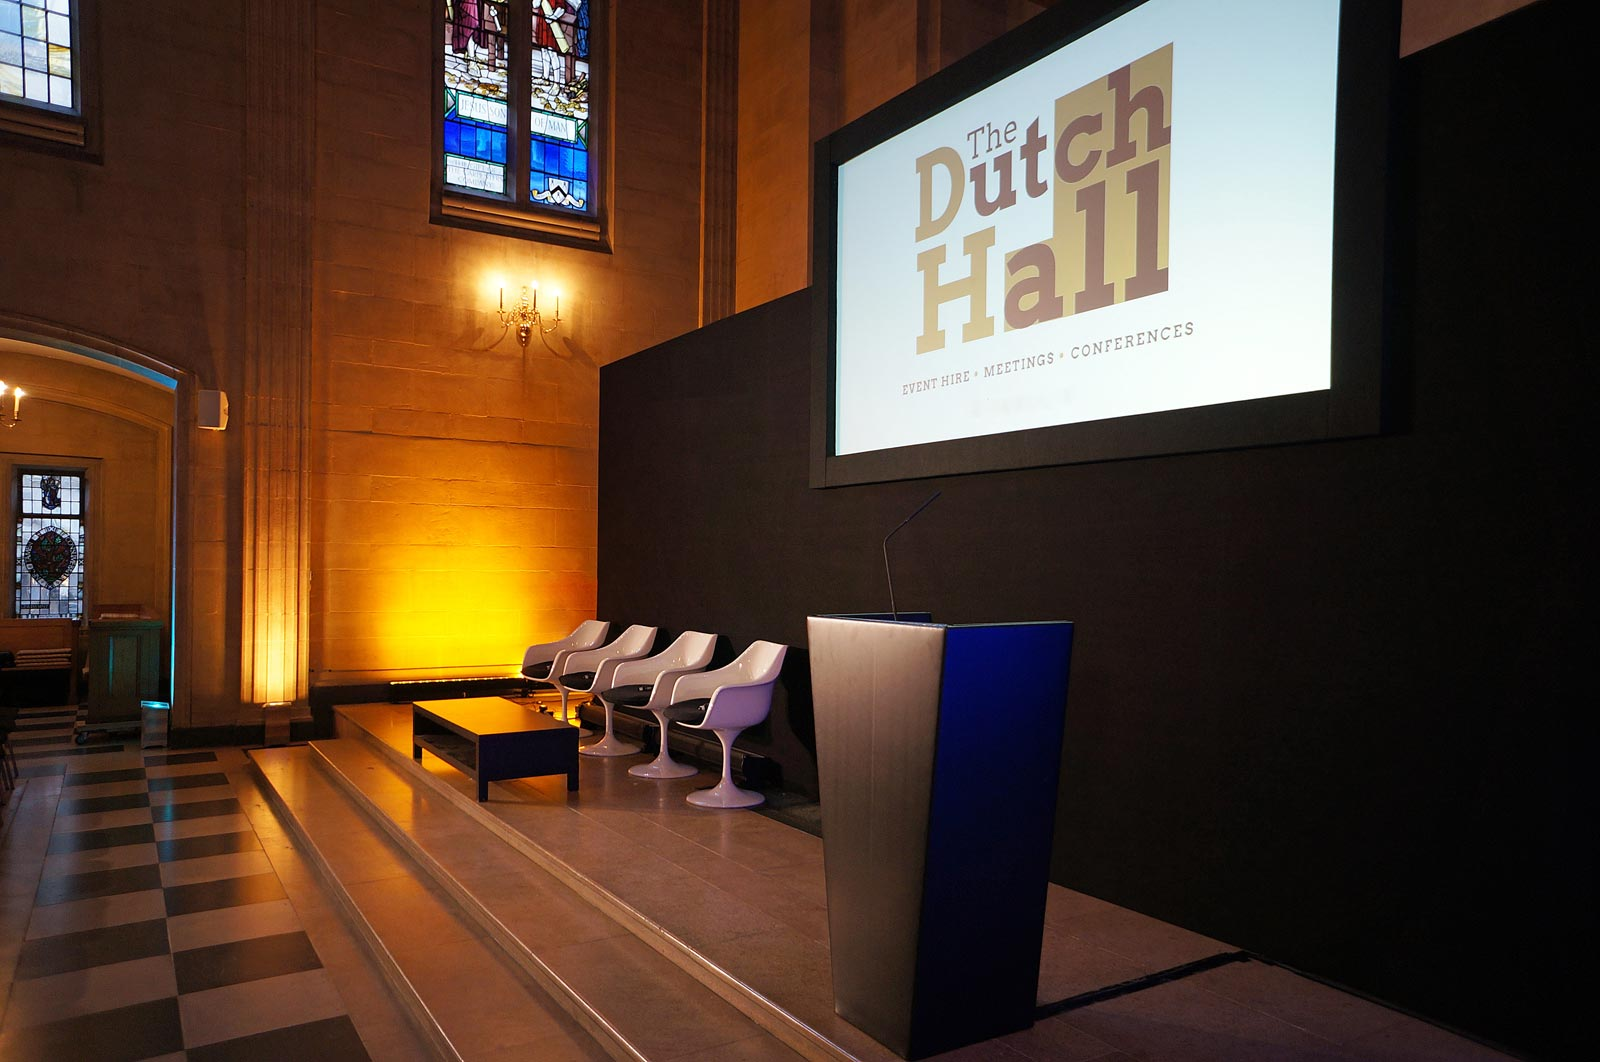 Spacious conference stage at London EC2 conference Venue The Dutch Hall